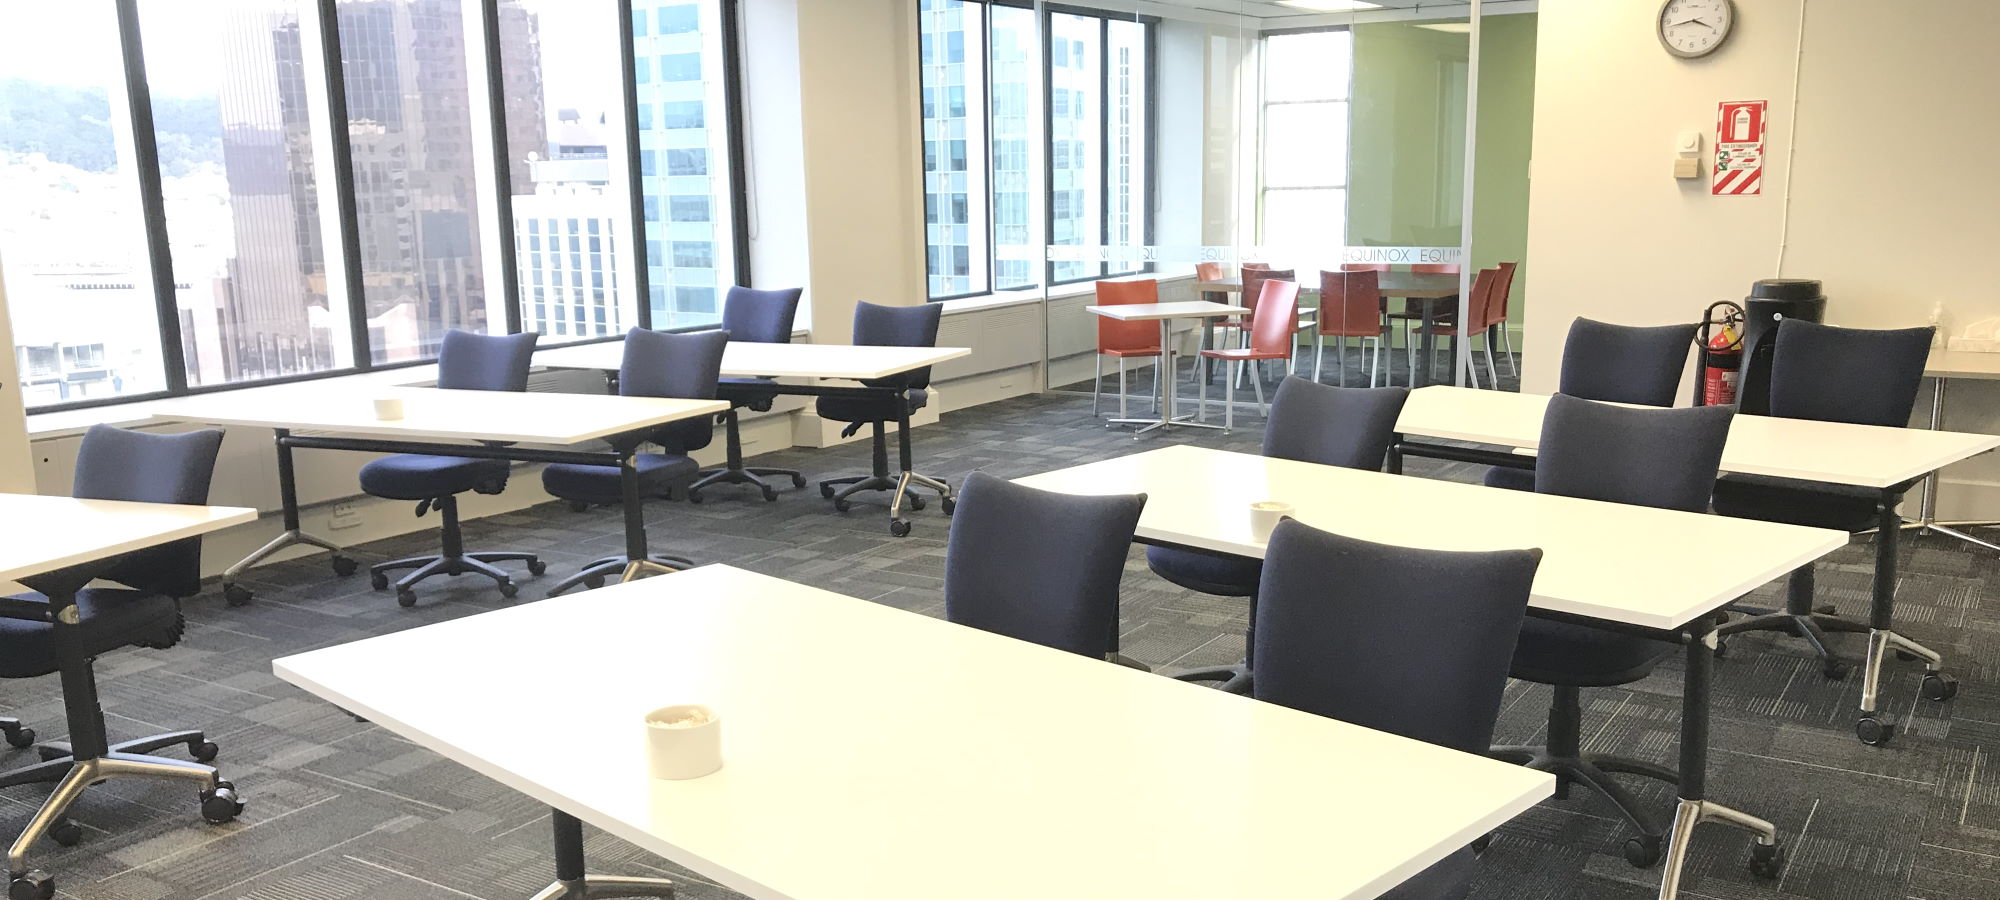 Multi-purpose training, meeting and project room